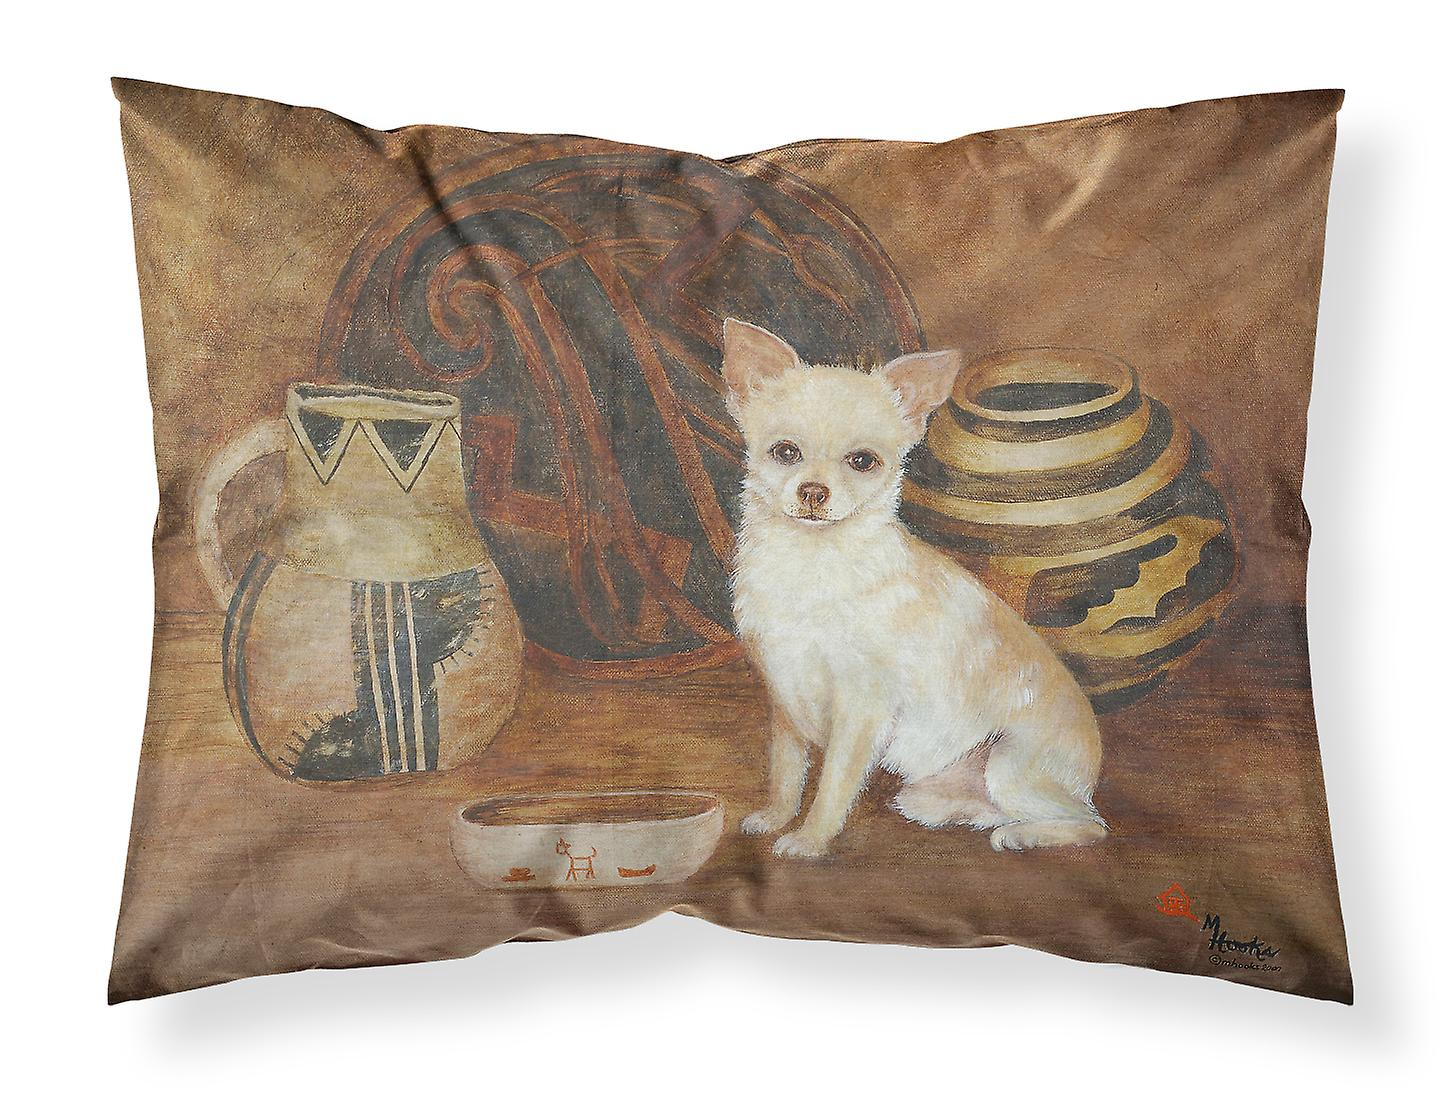 Ancient Standard Fabric Chihuahua Pillowcase History LqVzGUpSM